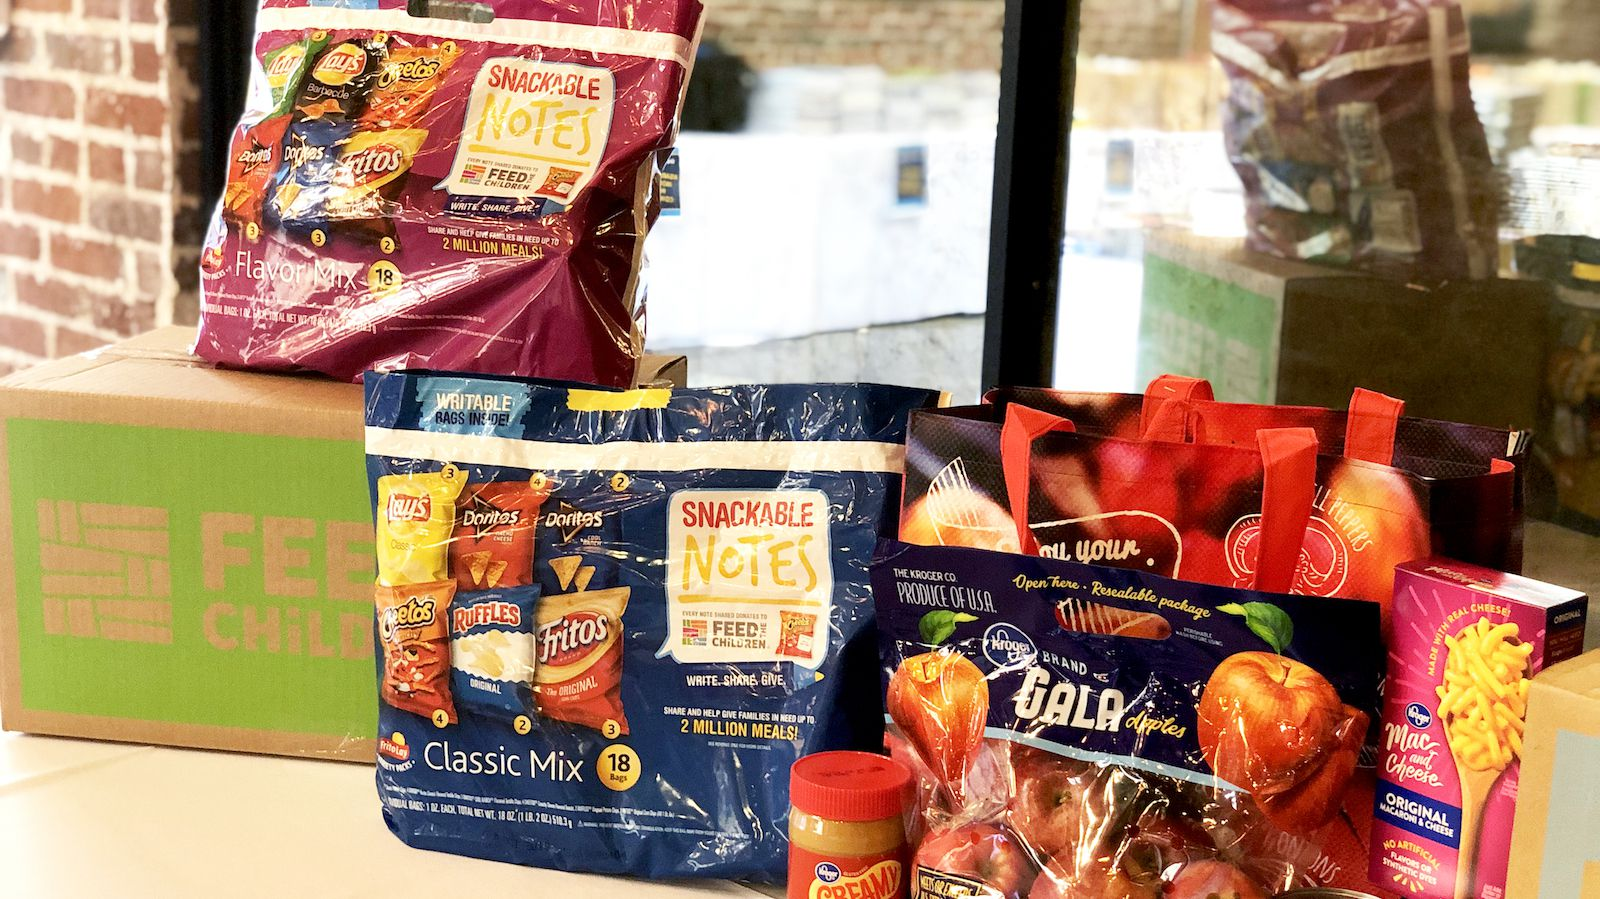 Many students rely on school meals to get the nutrition they need, but COVID-19 has impacted that access. A new partnership between Frito-Lay and Feed the Children aims to help.